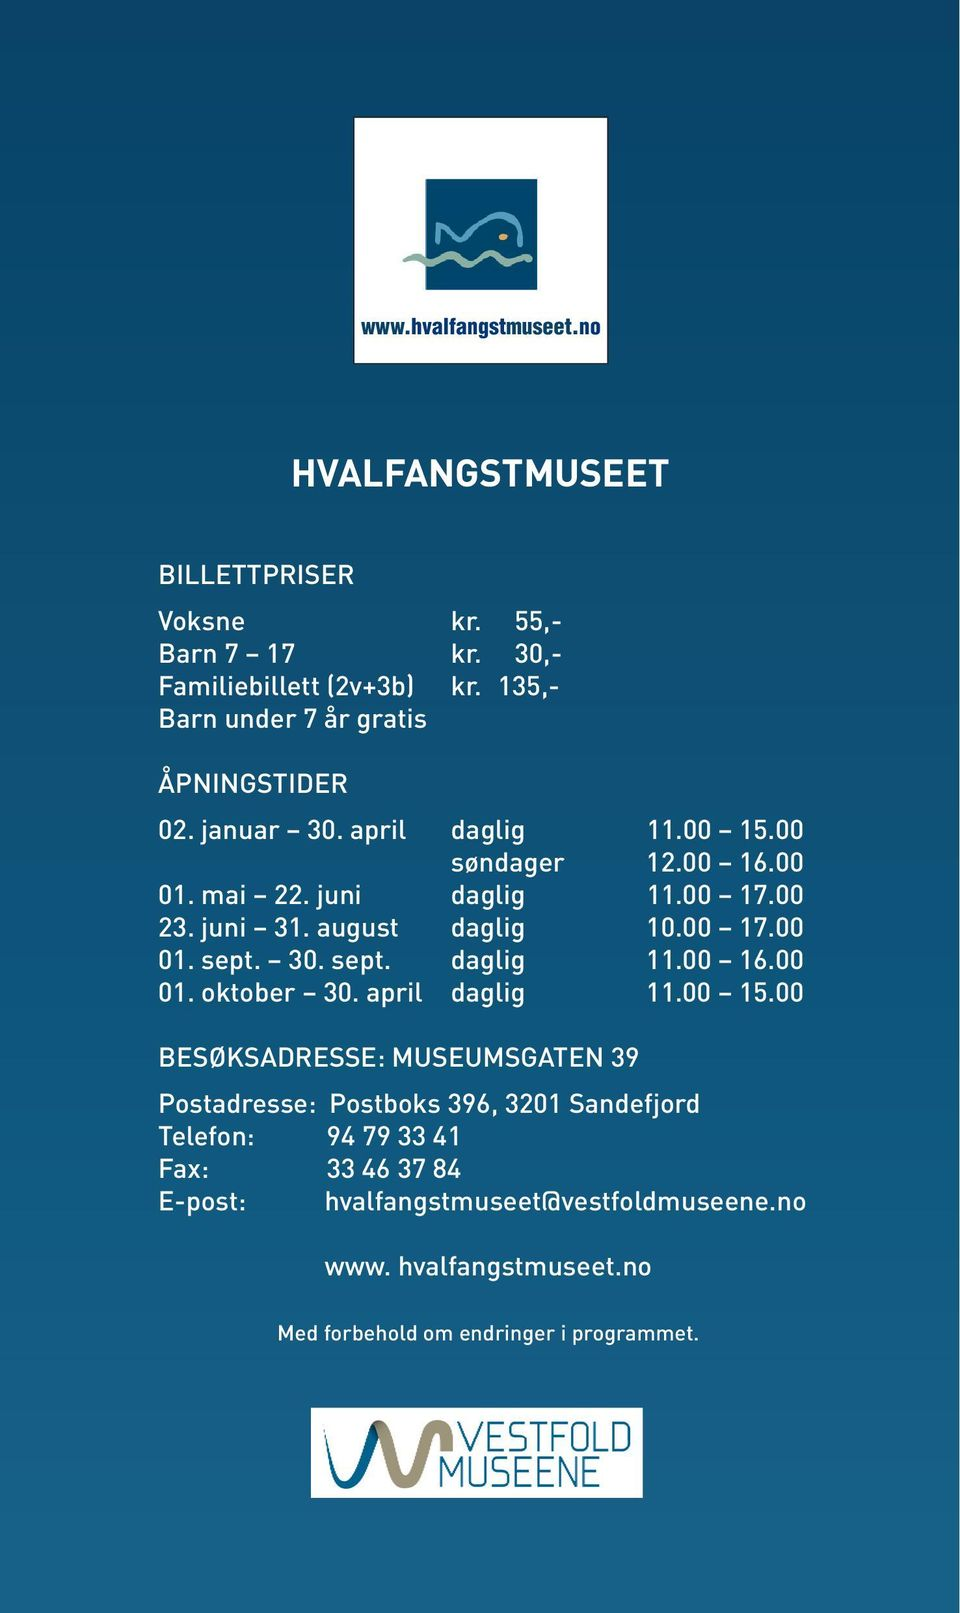 juni 31. august daglig 10.00 17.00 01. sept. 30. sept. daglig 11.00 16.00 01. oktober 30. april daglig 11.00 15.